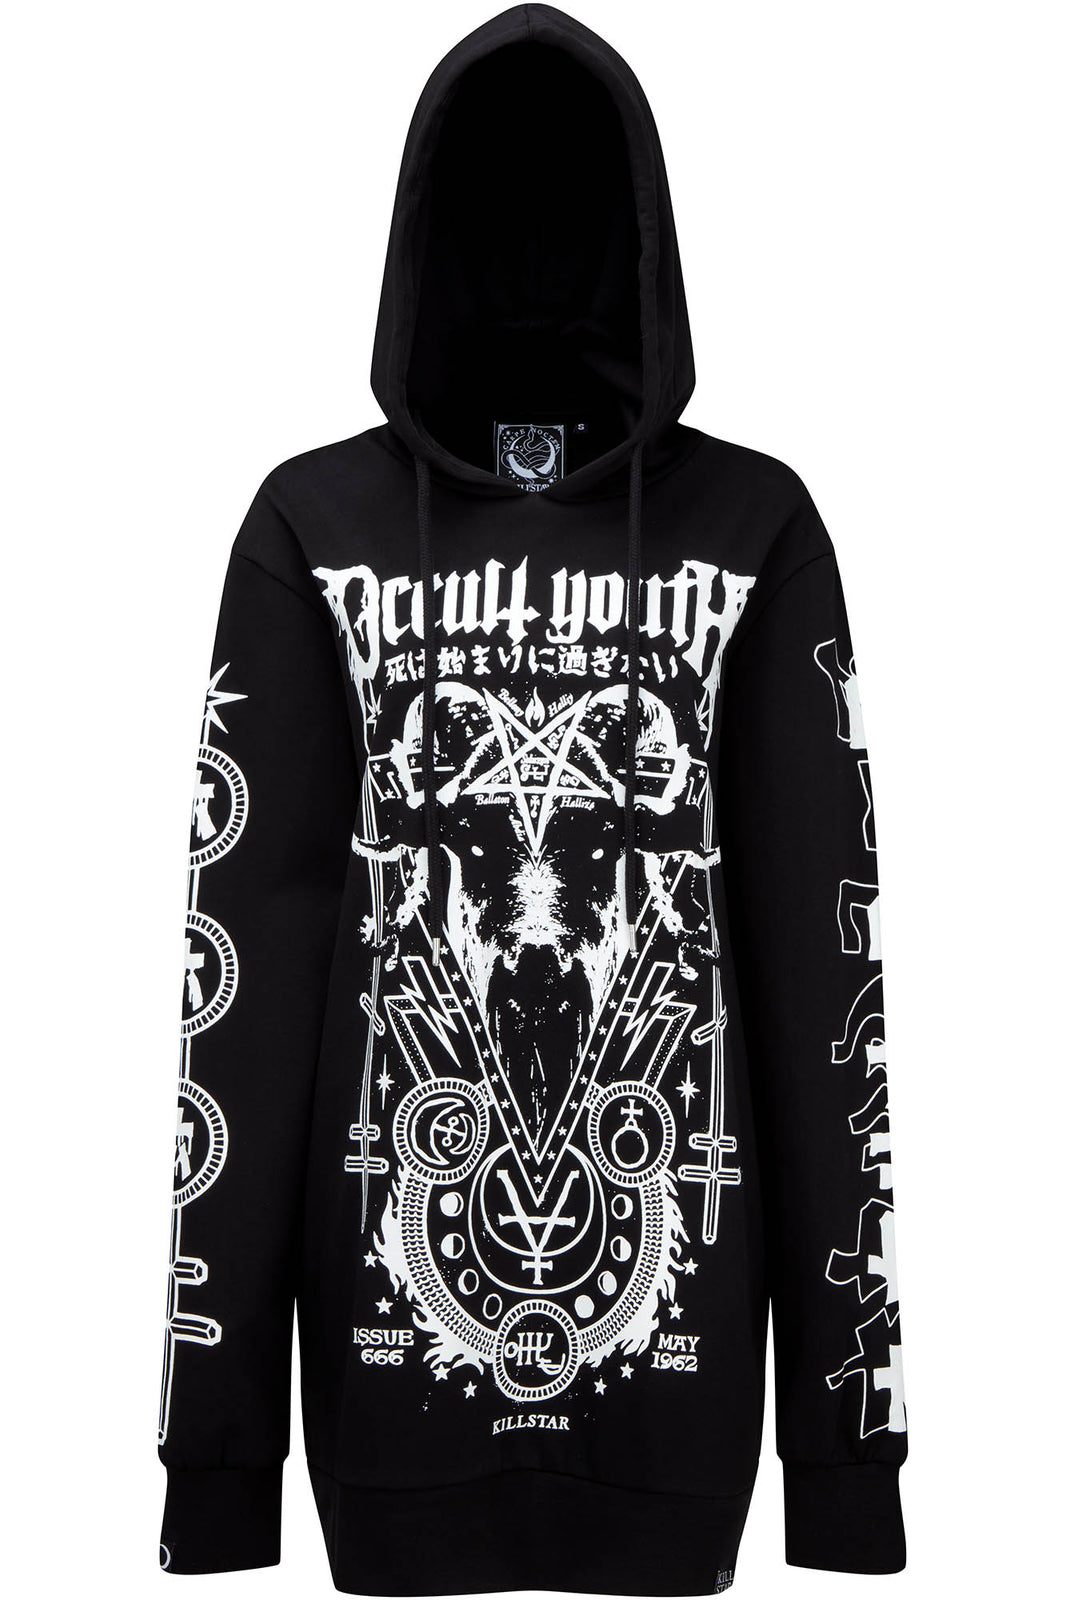 Occult Youth Hoodie